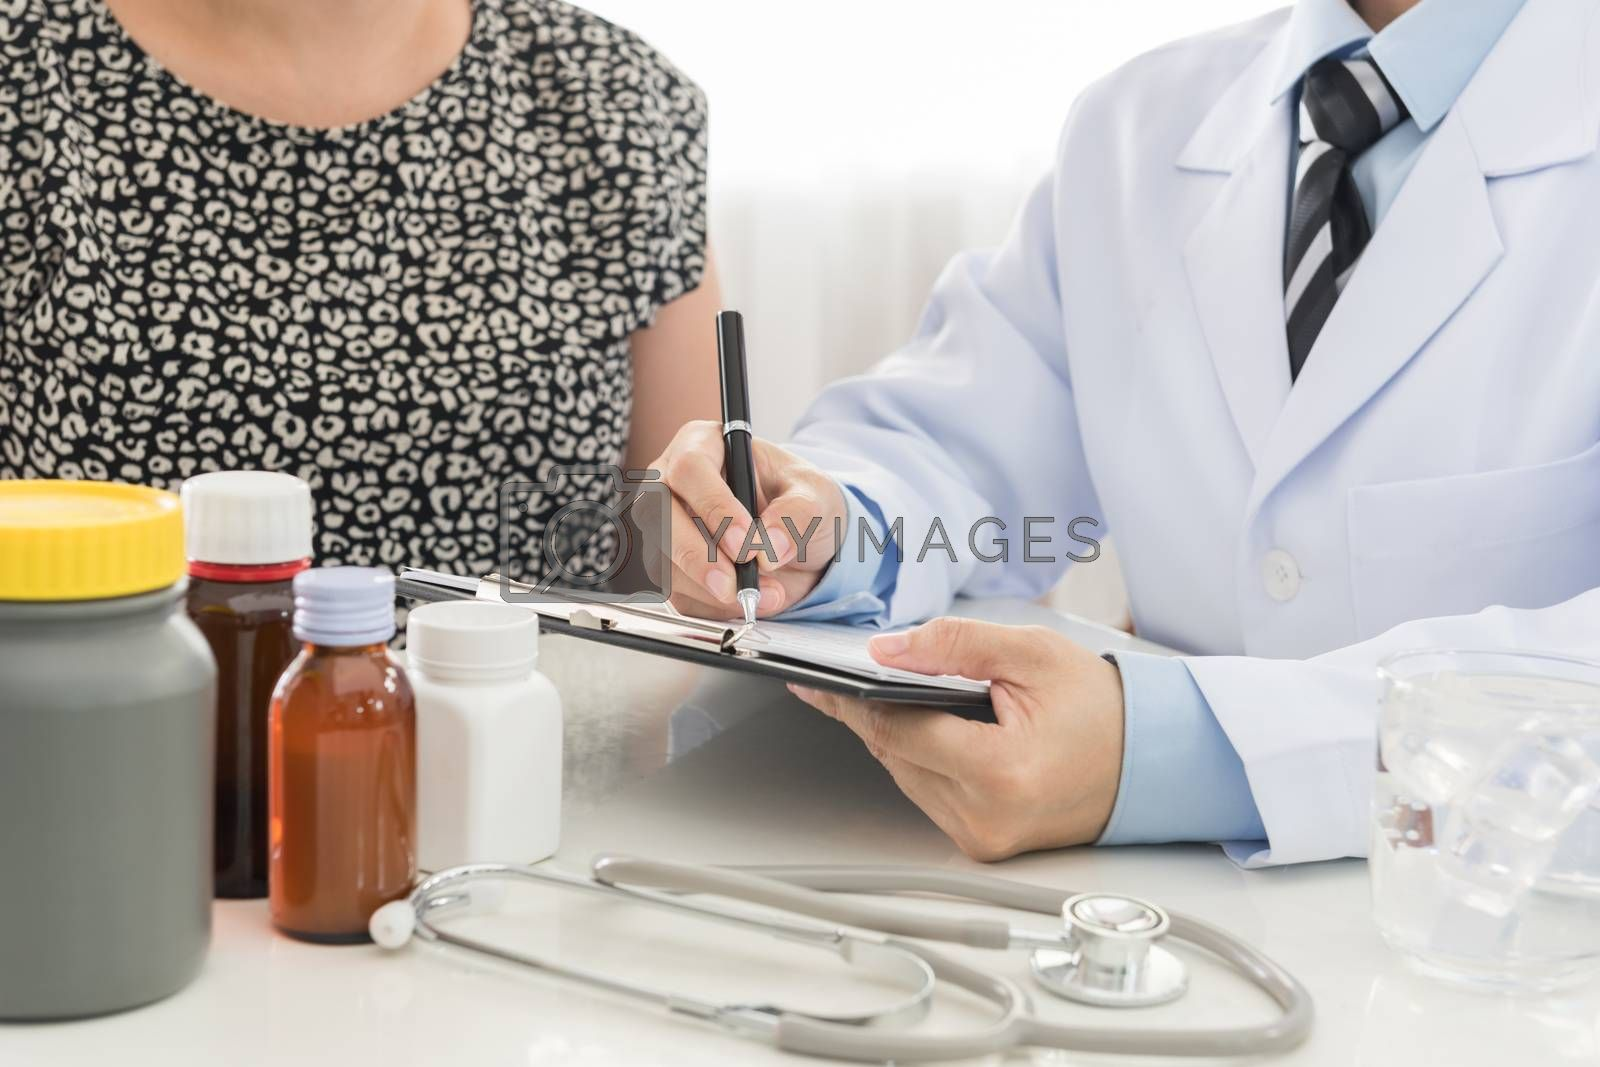 Doctors are recording information the patient's illness.